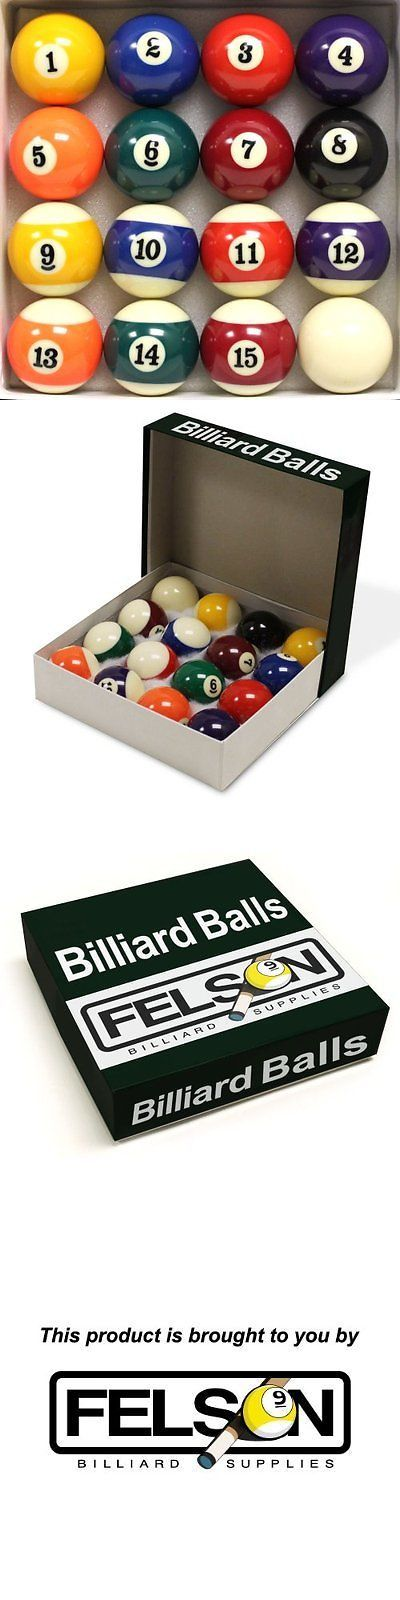 Complete Ball Sets 75193: Pool Table Billiard Ball Set By Felson Billiard Supply -> BUY IT NOW ONLY: $34.95 on eBay!